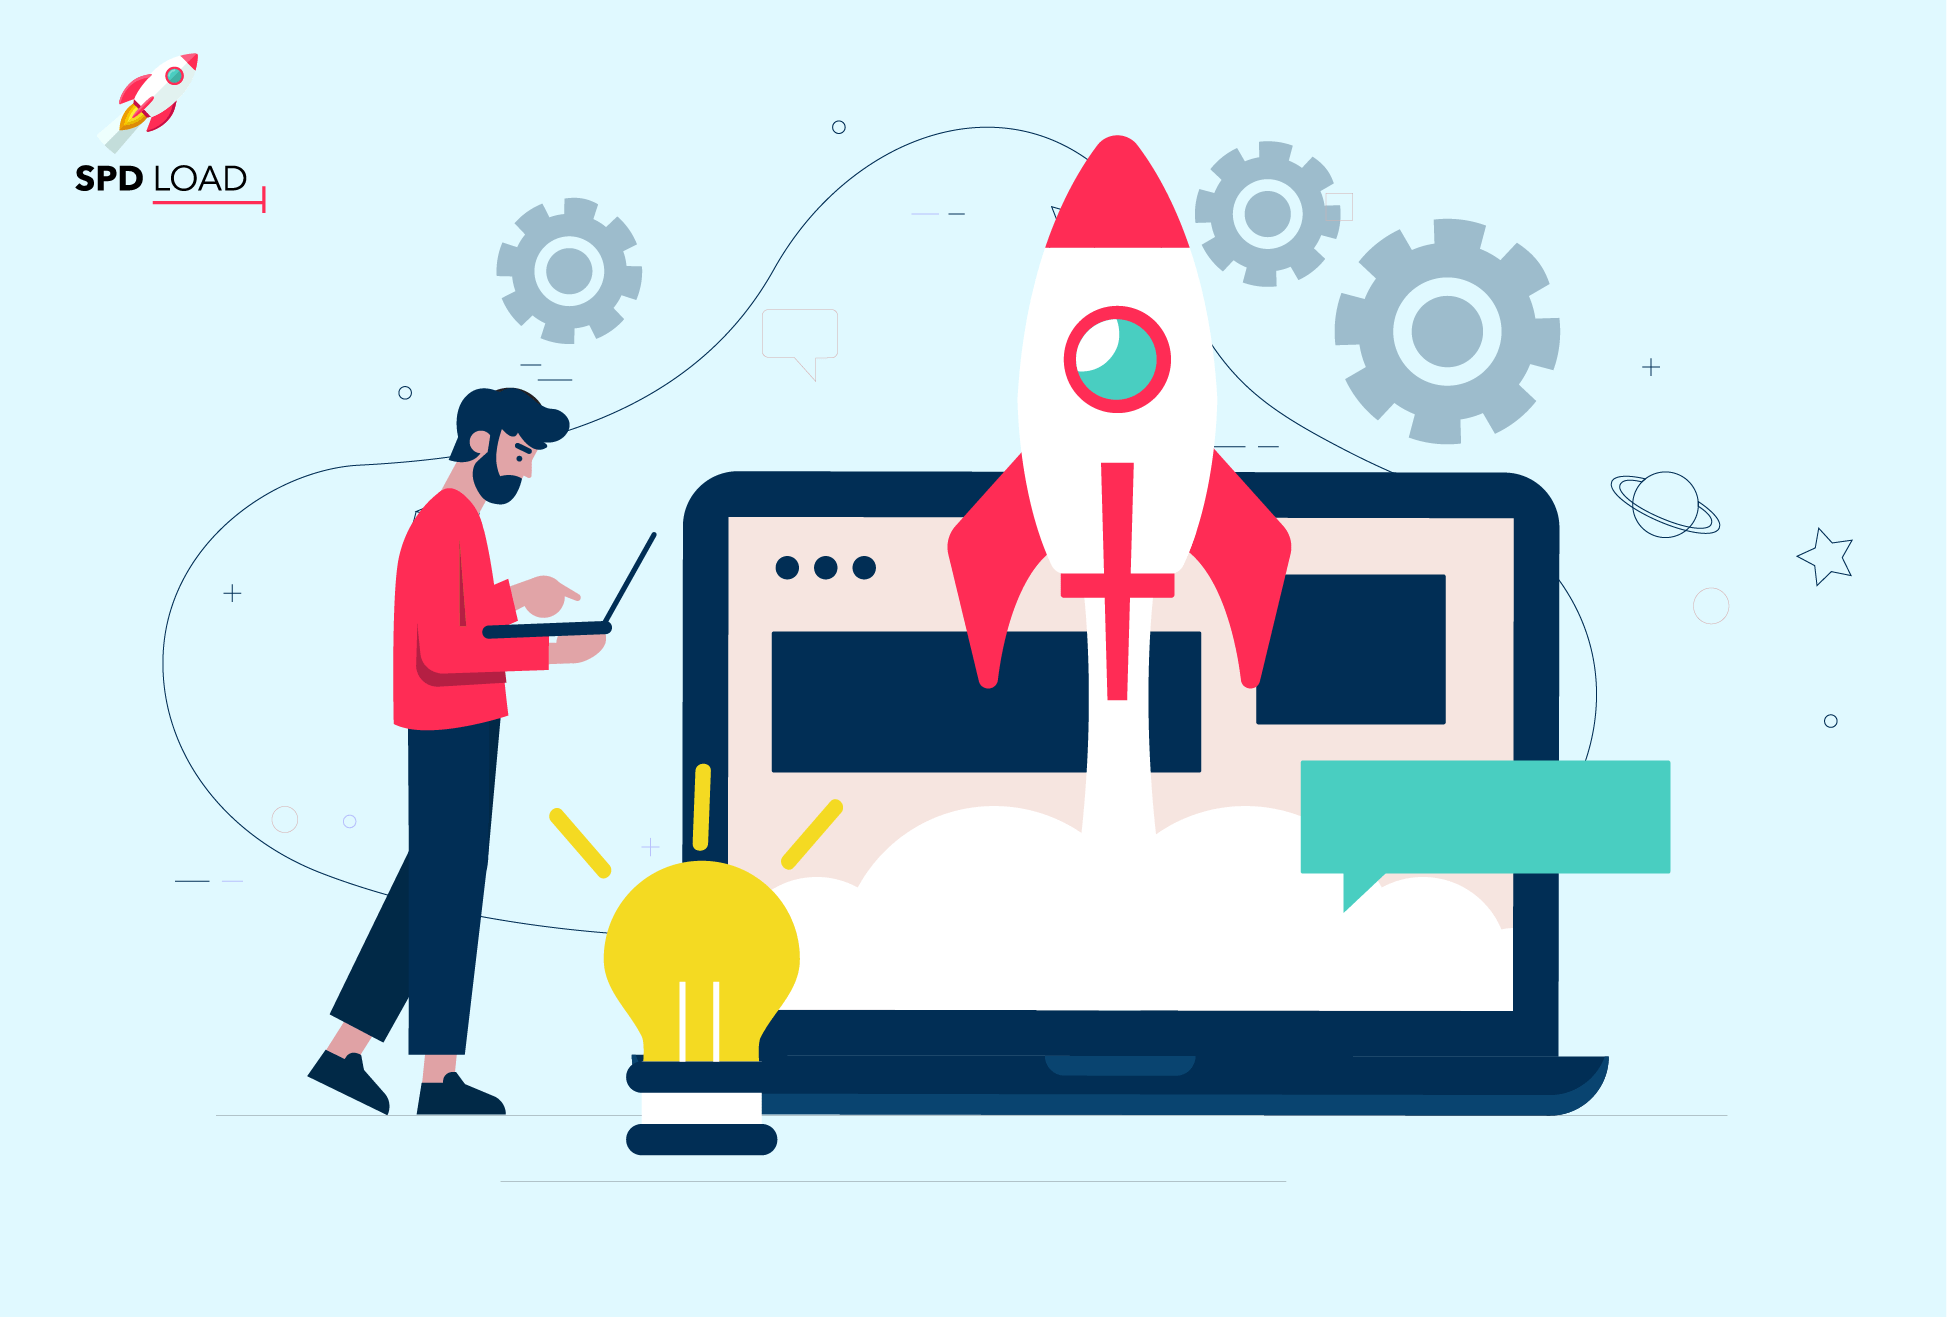 The ultimate list of top 20 ideas to launch profitable SaaS business in 2020